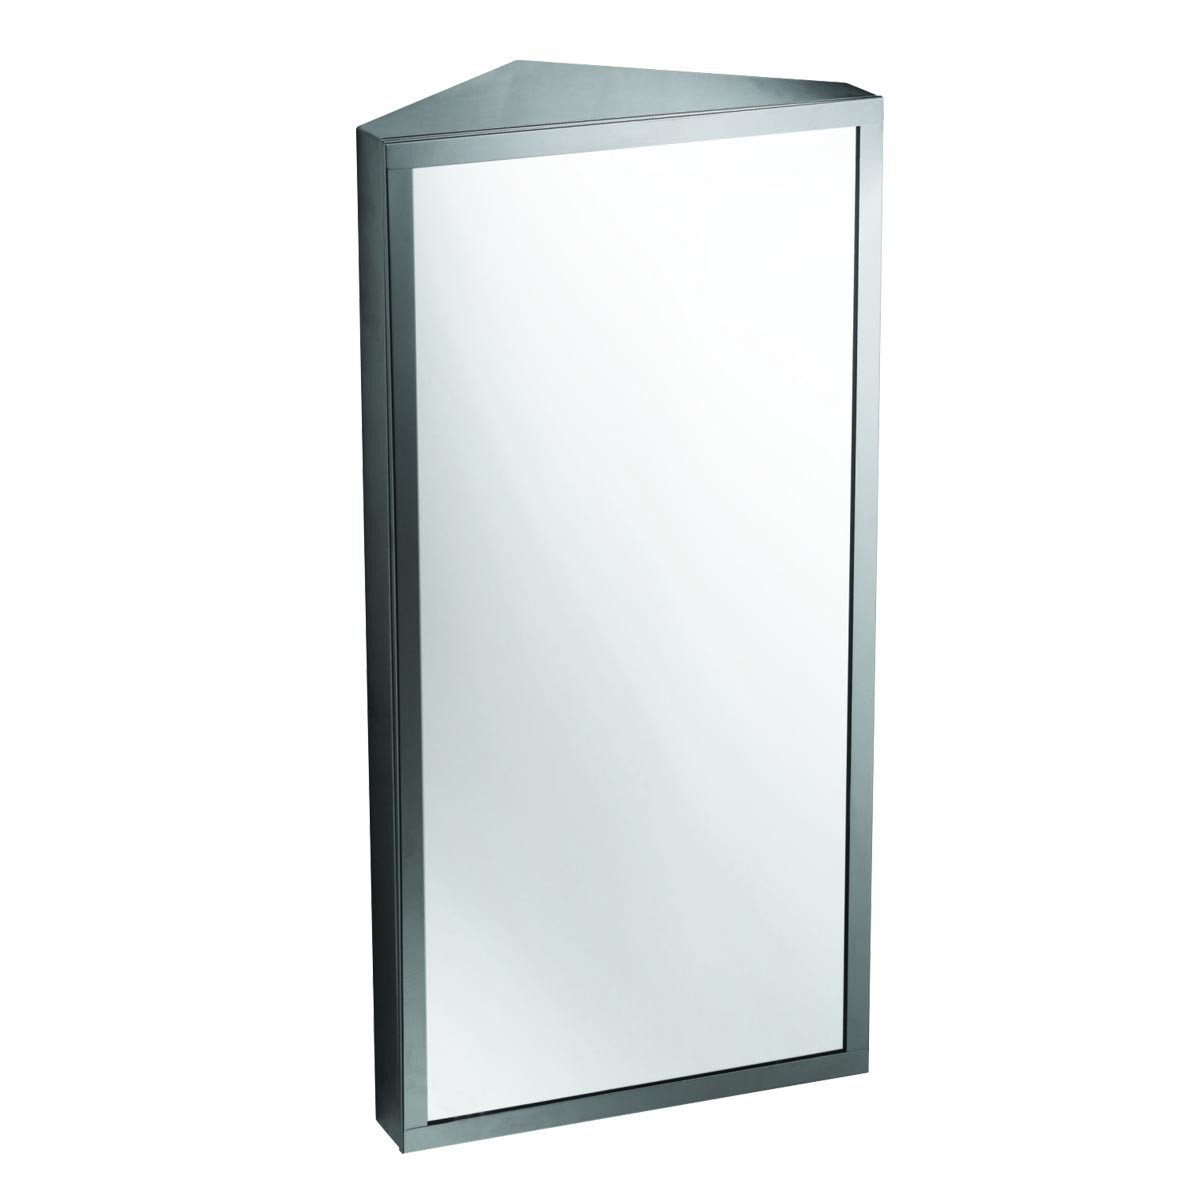 Amazon.com: Brushed Stainless Steel Medicine Cabinet Corner Wall ...